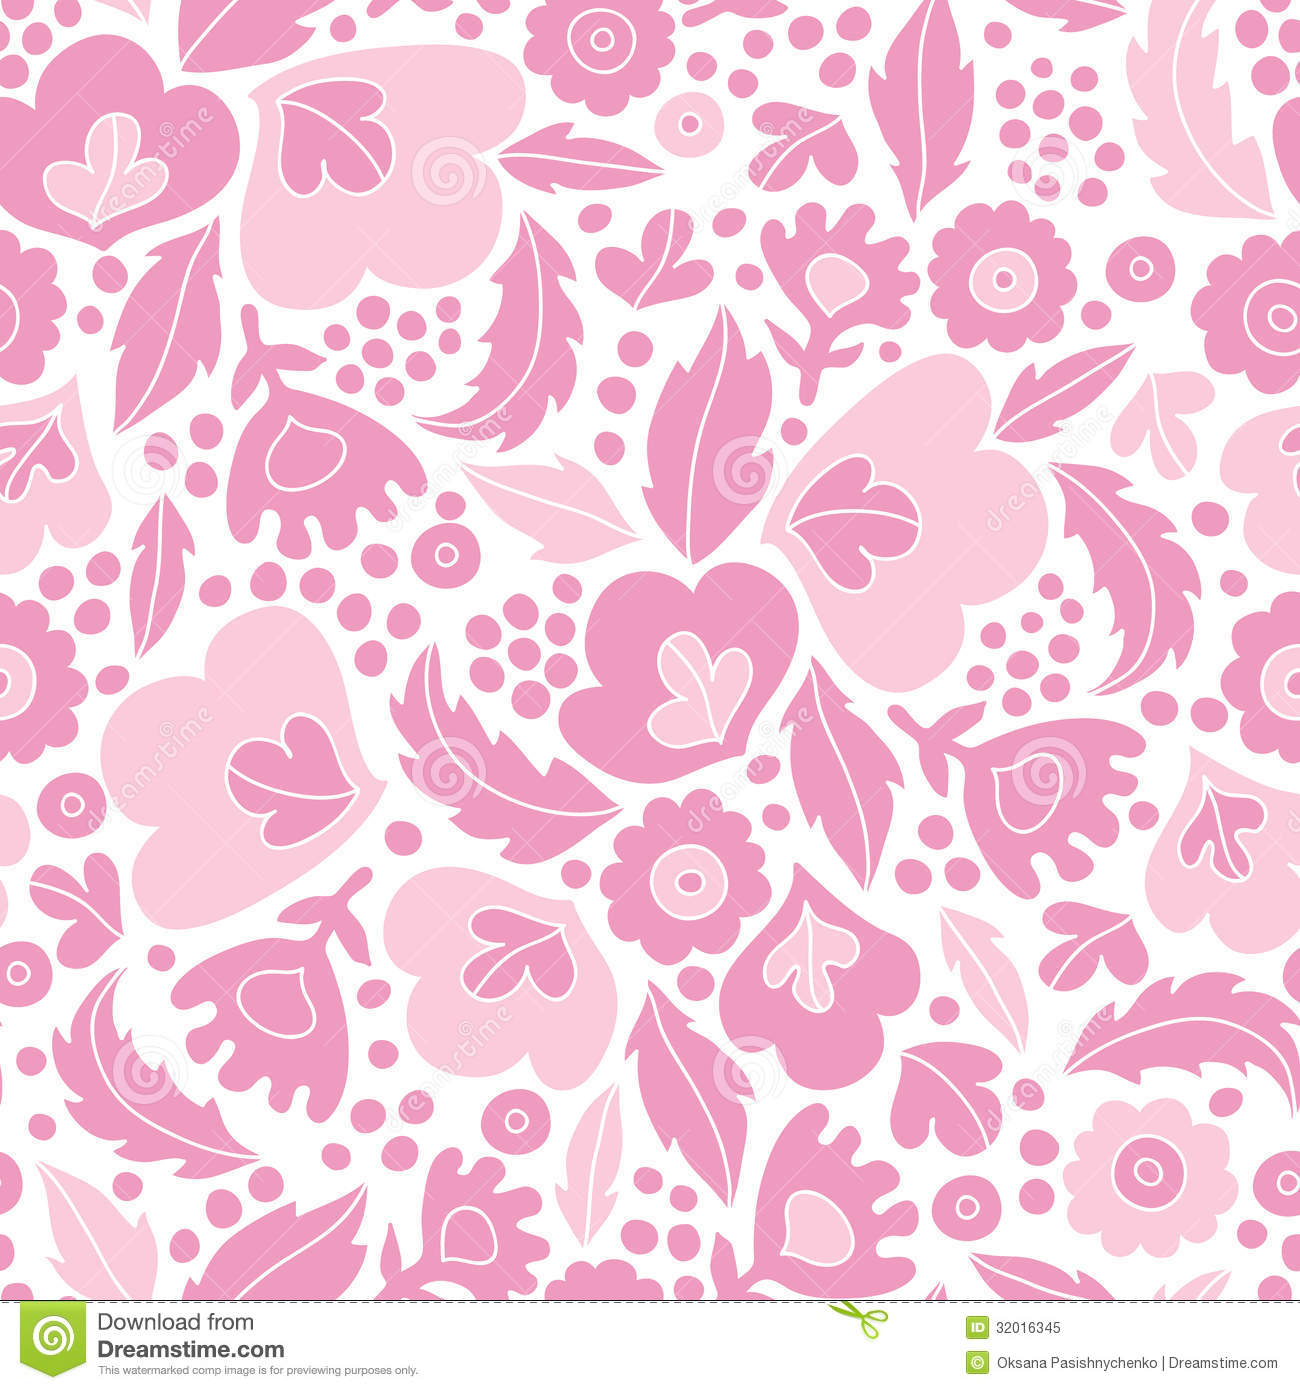 Seamless pink floral pattern - photo#37